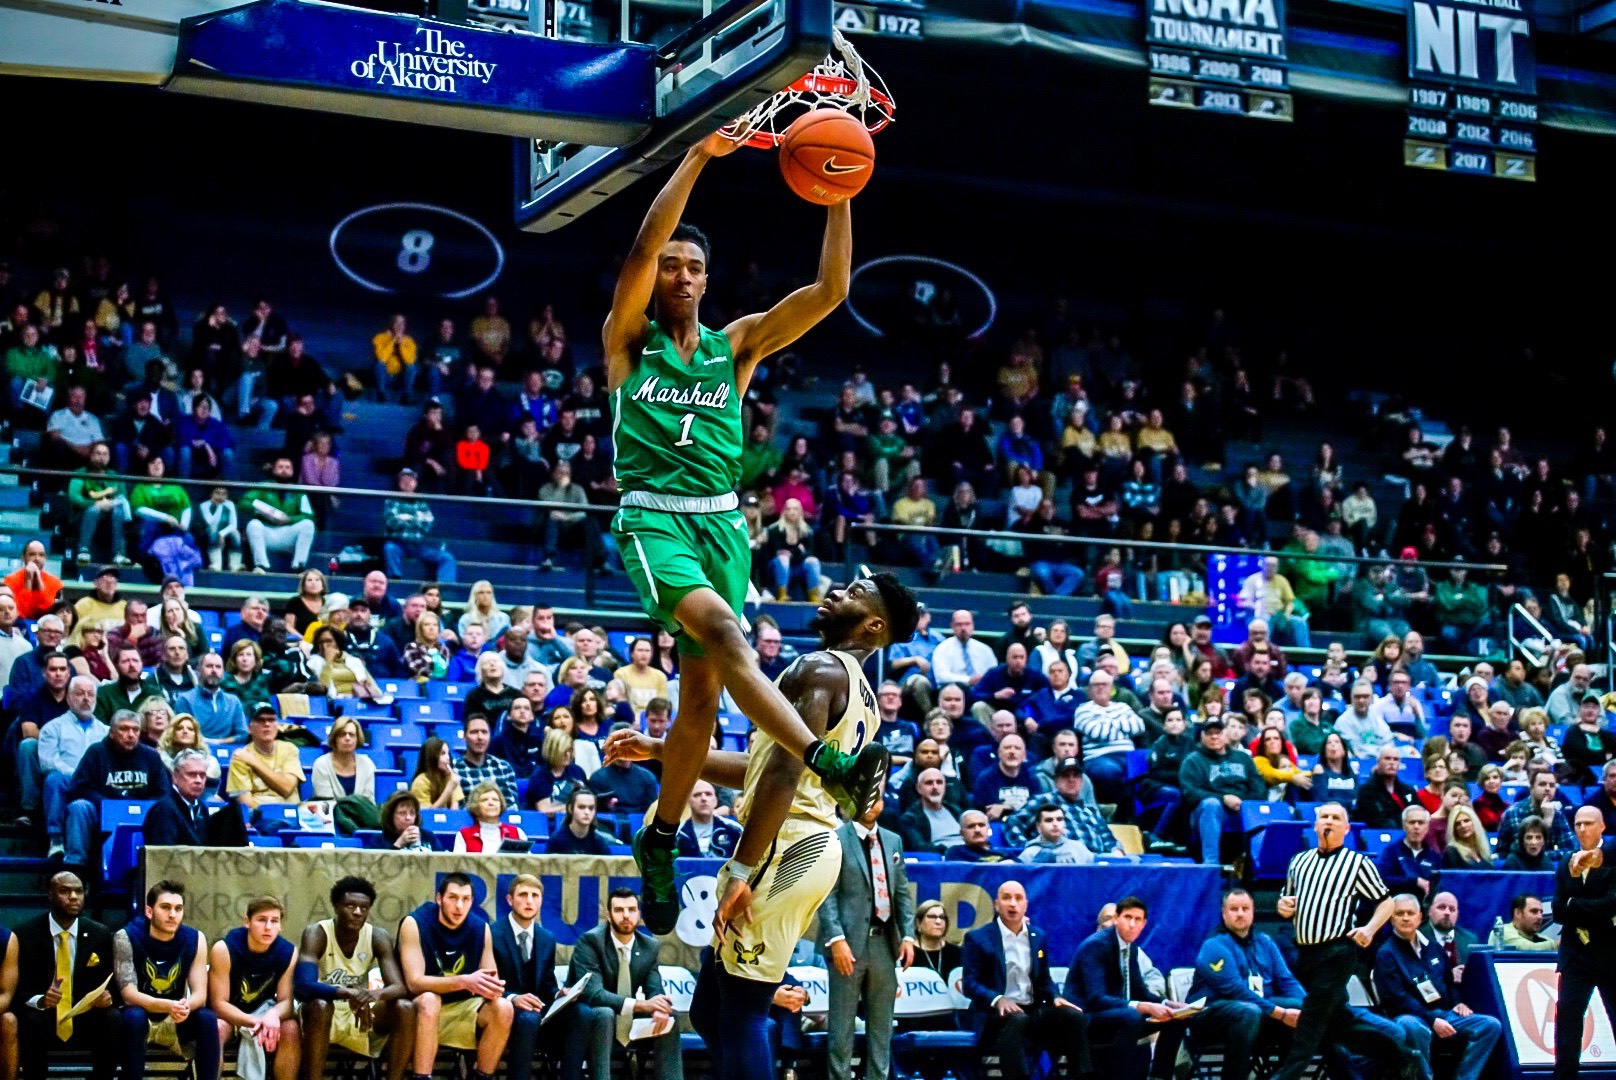 CSJ Men's Hoops Preview: Marshall at Western Kentucky, How